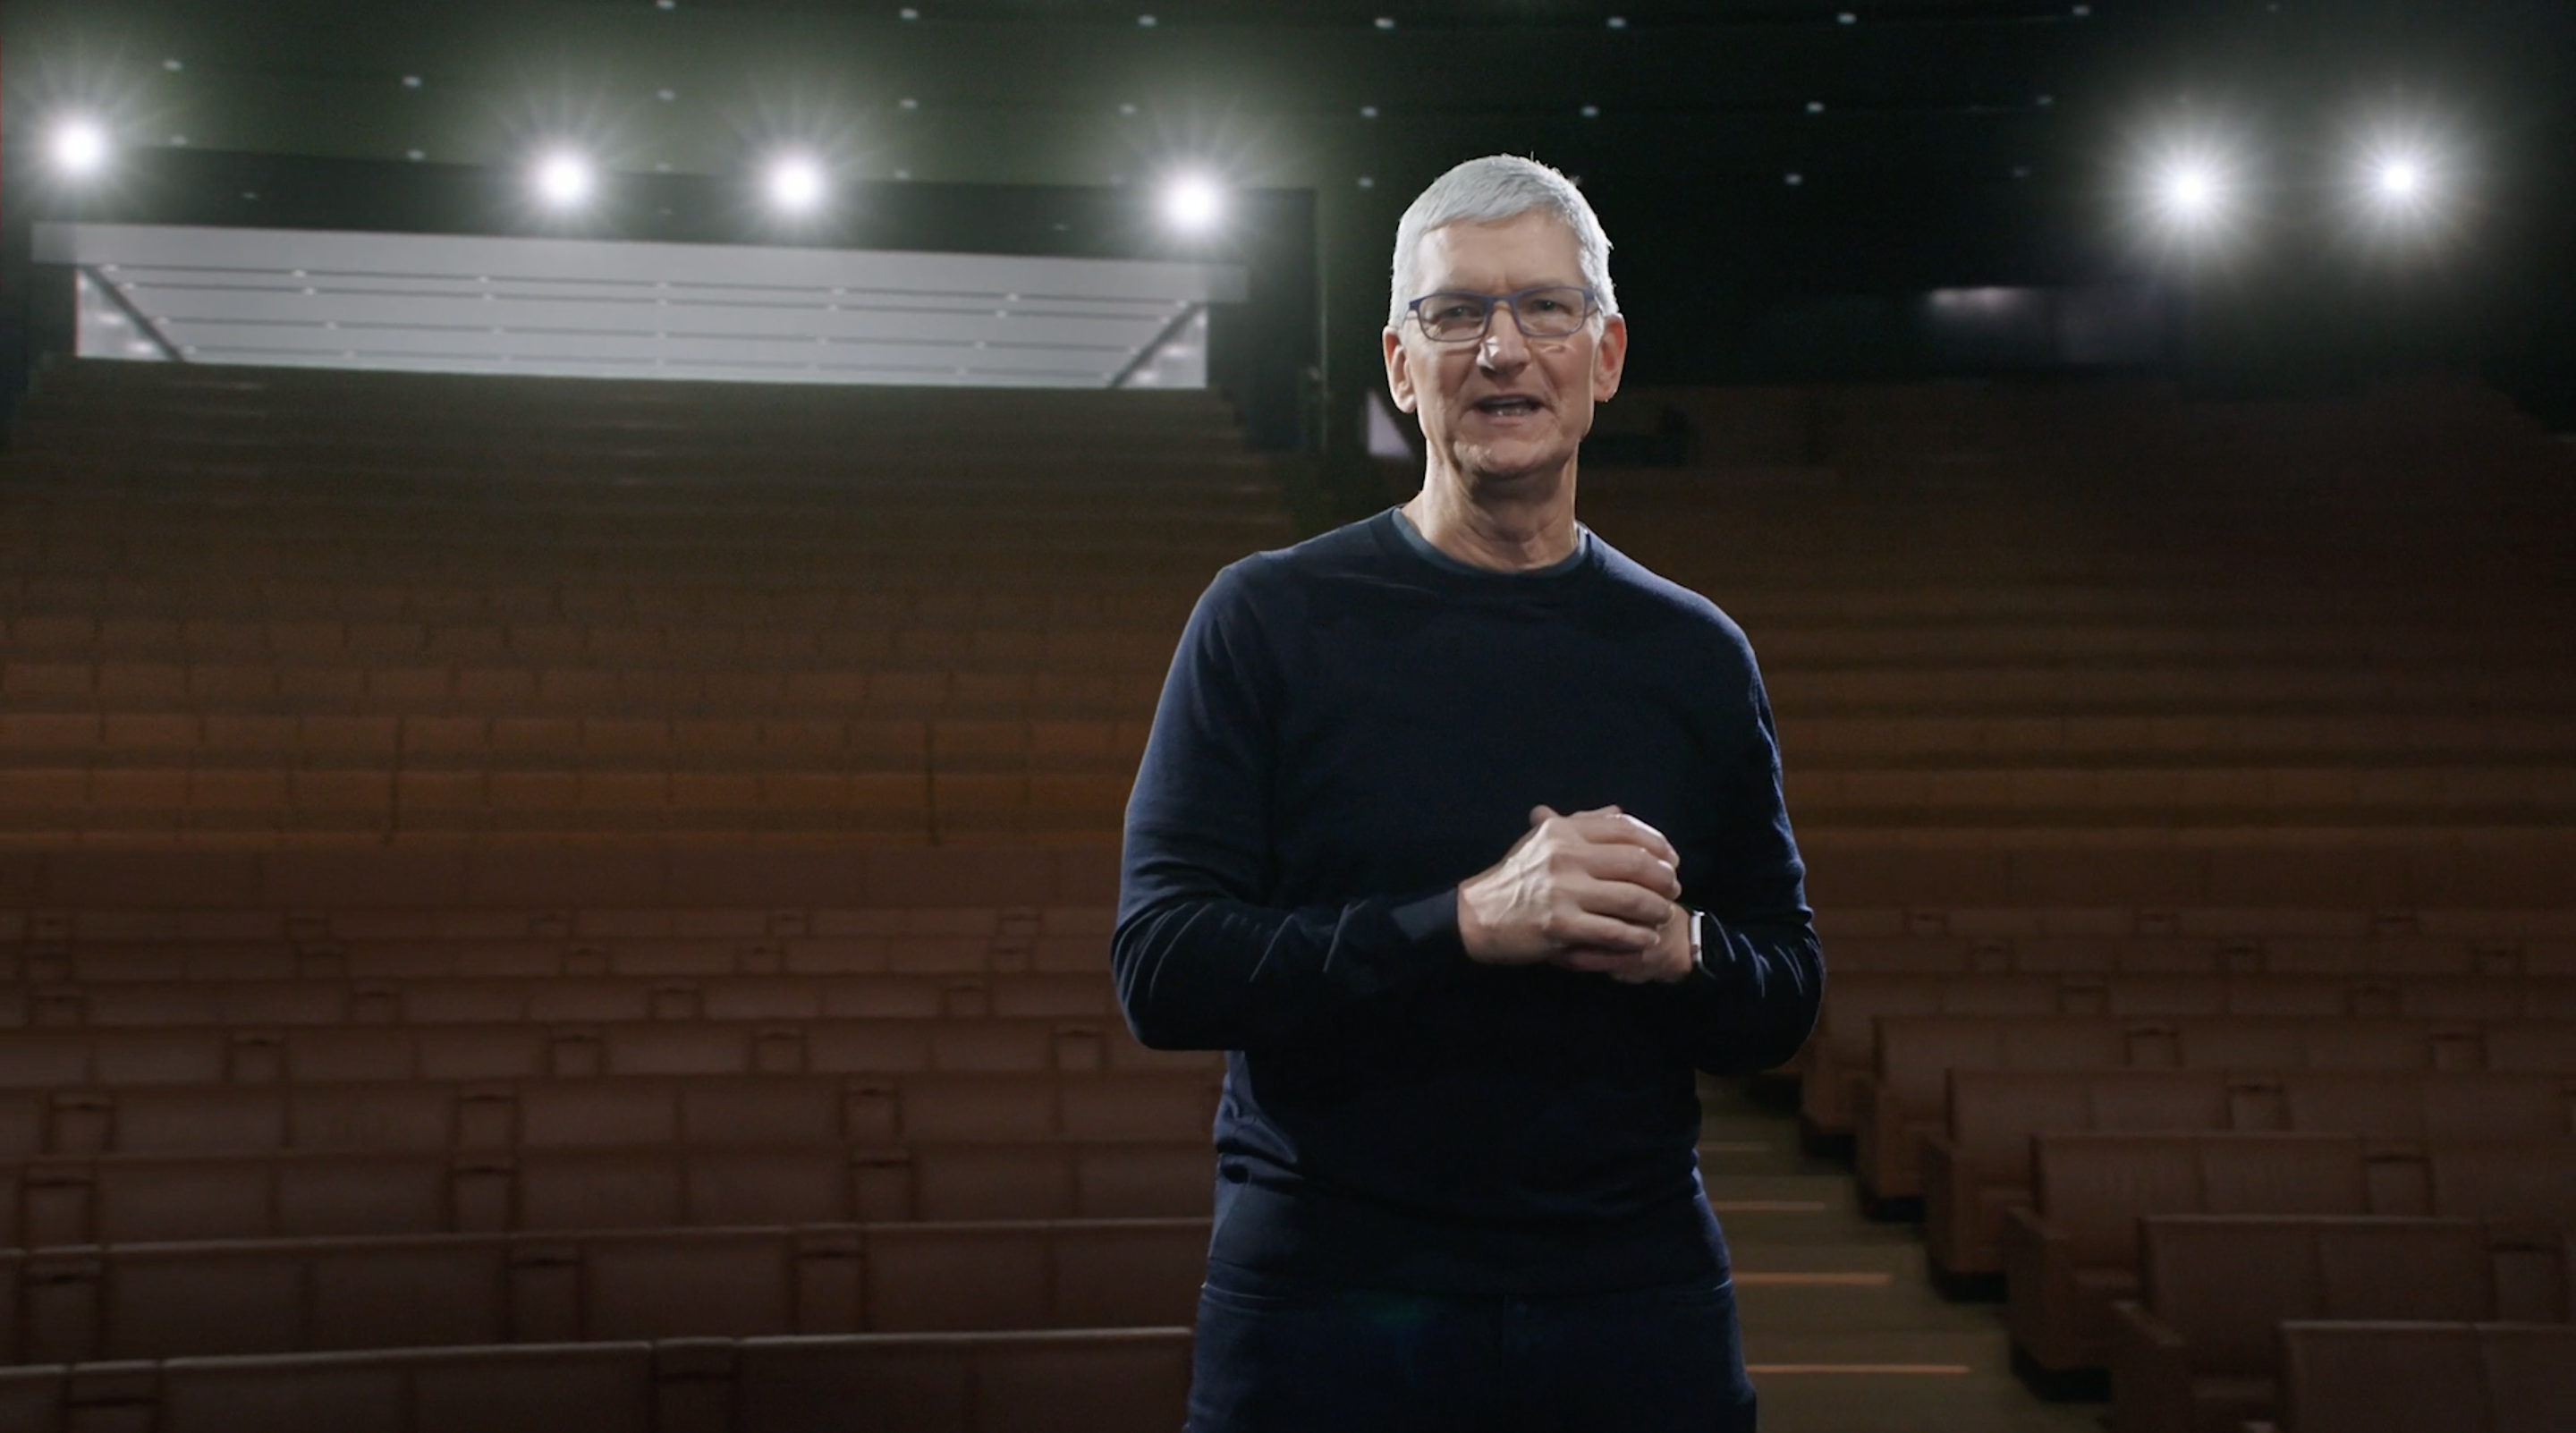 , The March Apple event didn't happen as rumored, but April's still on the table – Source CNET Computer News, iBSC Technologies - learning management services, LMS, Wordpress, CMS, Moodle, IT, Email, Web Hosting, Cloud Server,Cloud Computing